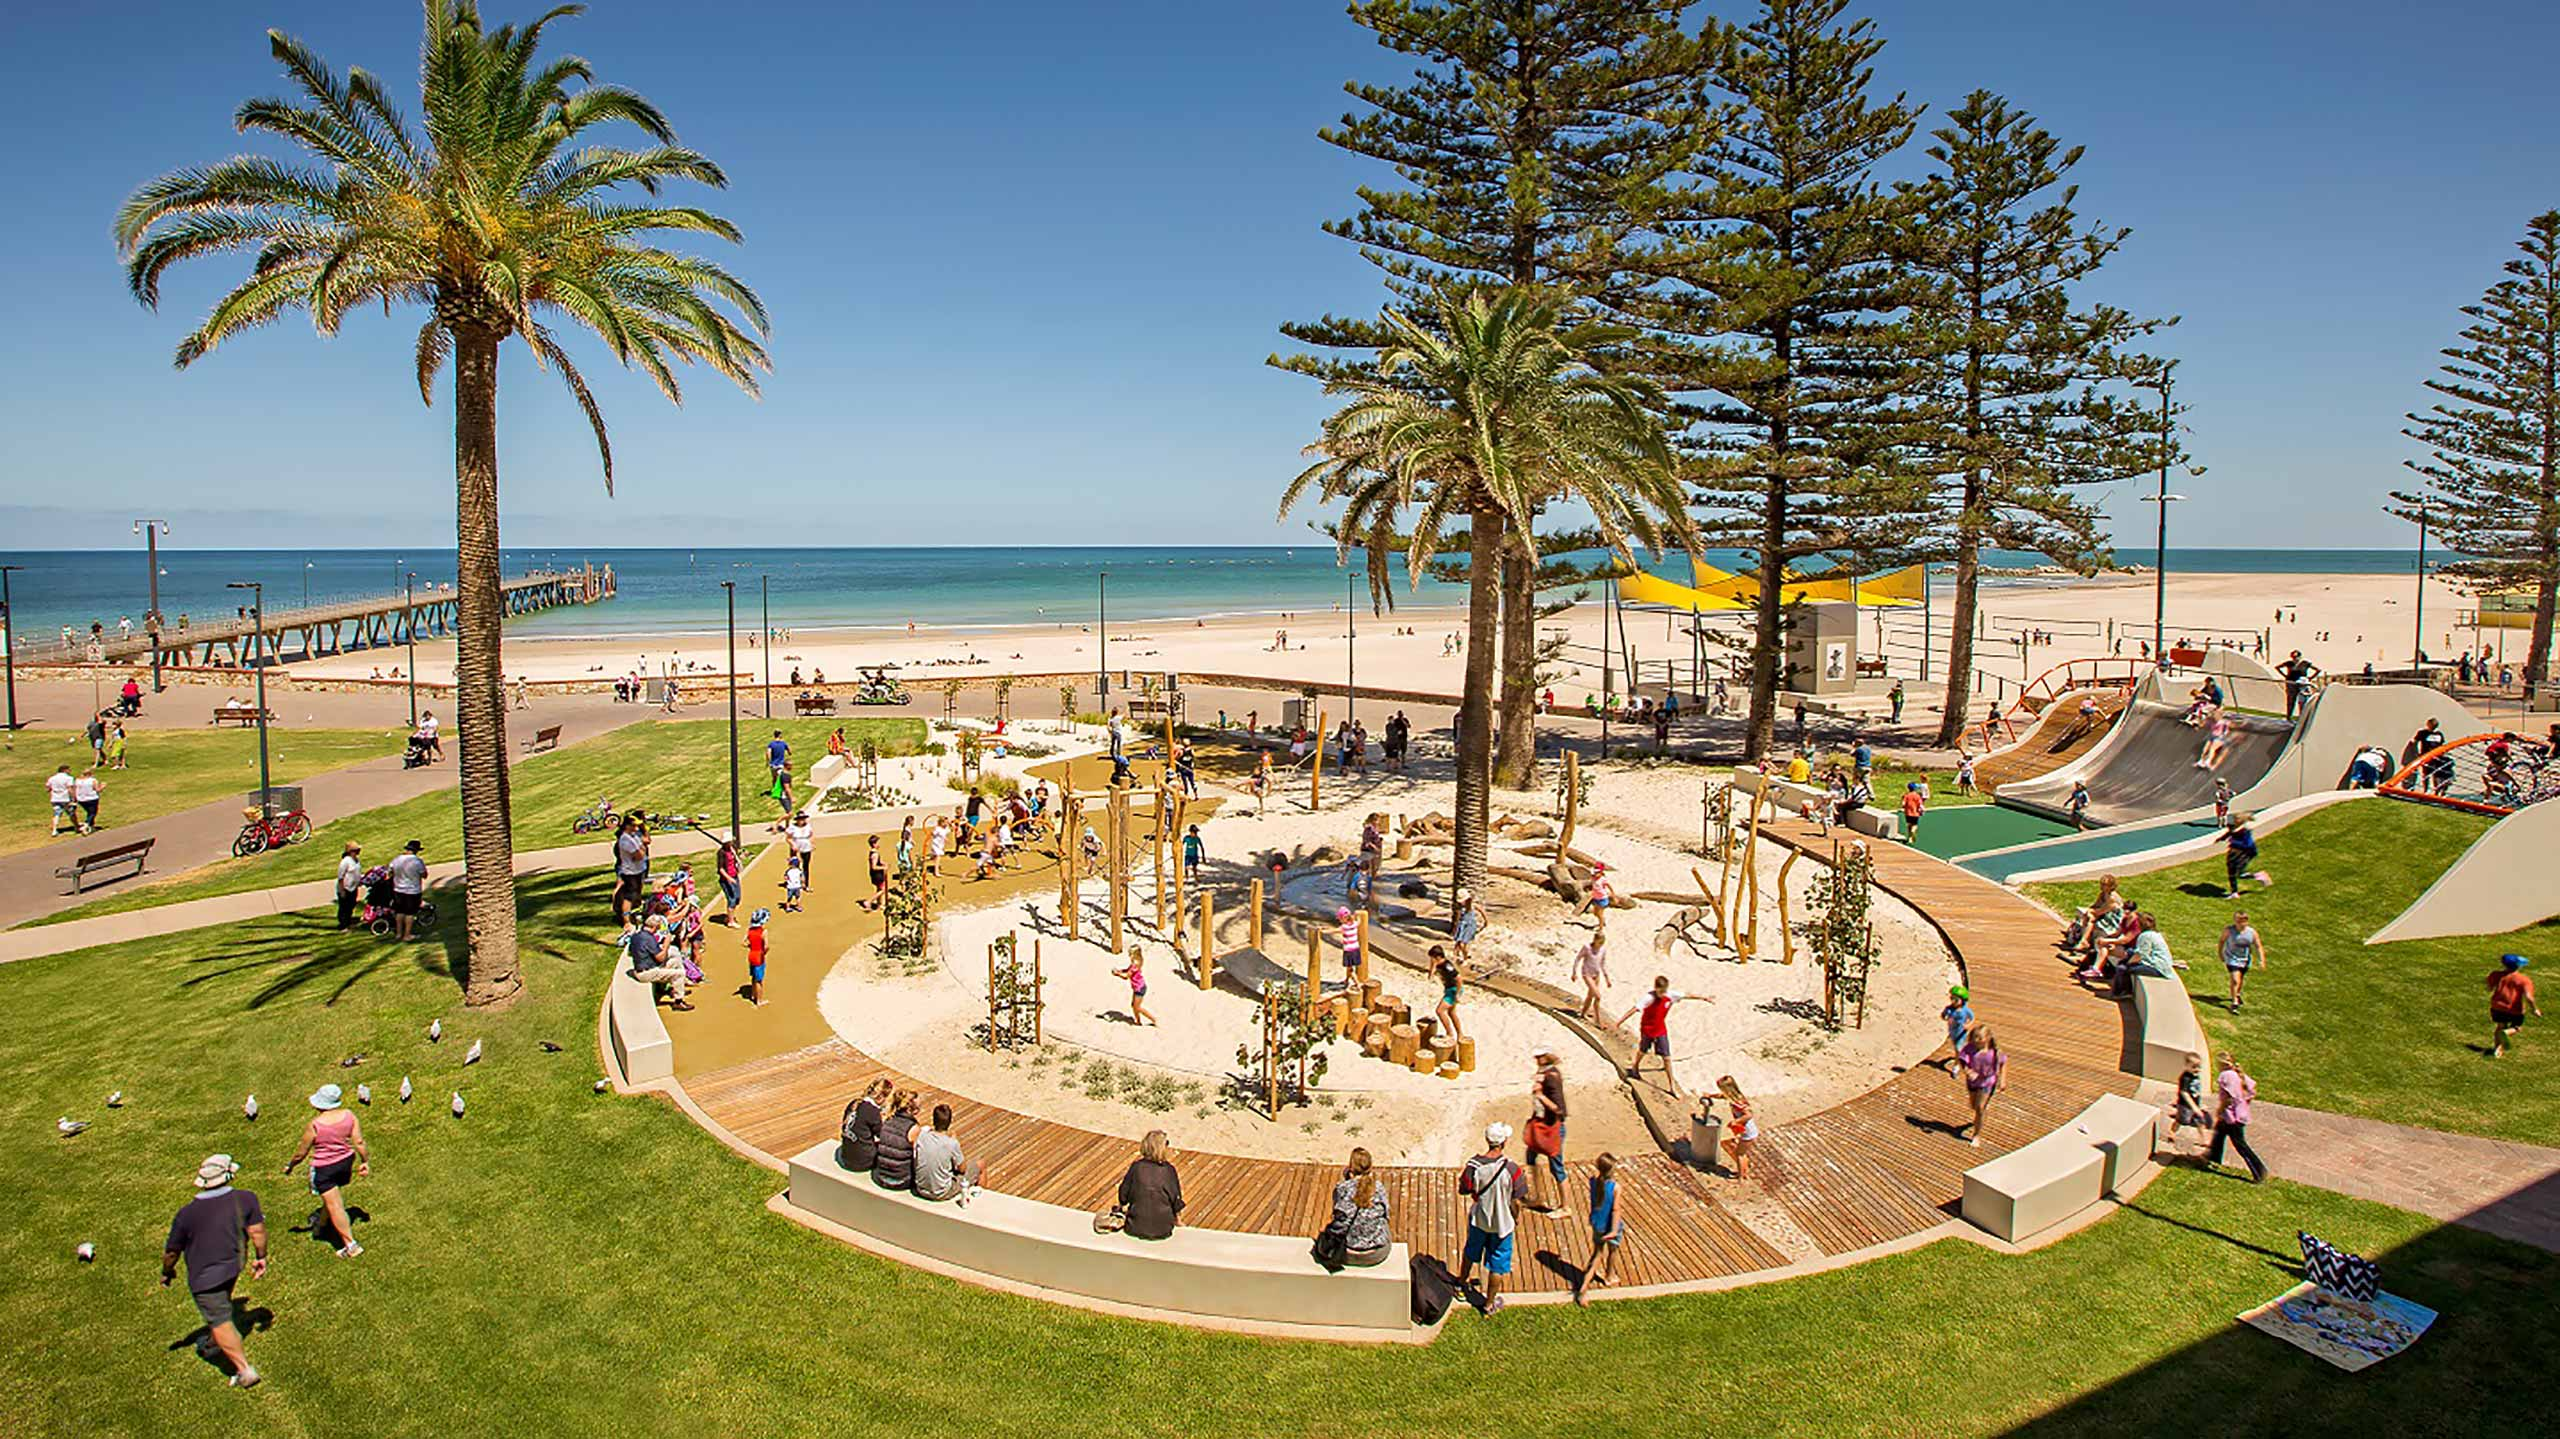 glenelg foreshore playspace along adelaide 39 s beaches glenelg. Black Bedroom Furniture Sets. Home Design Ideas